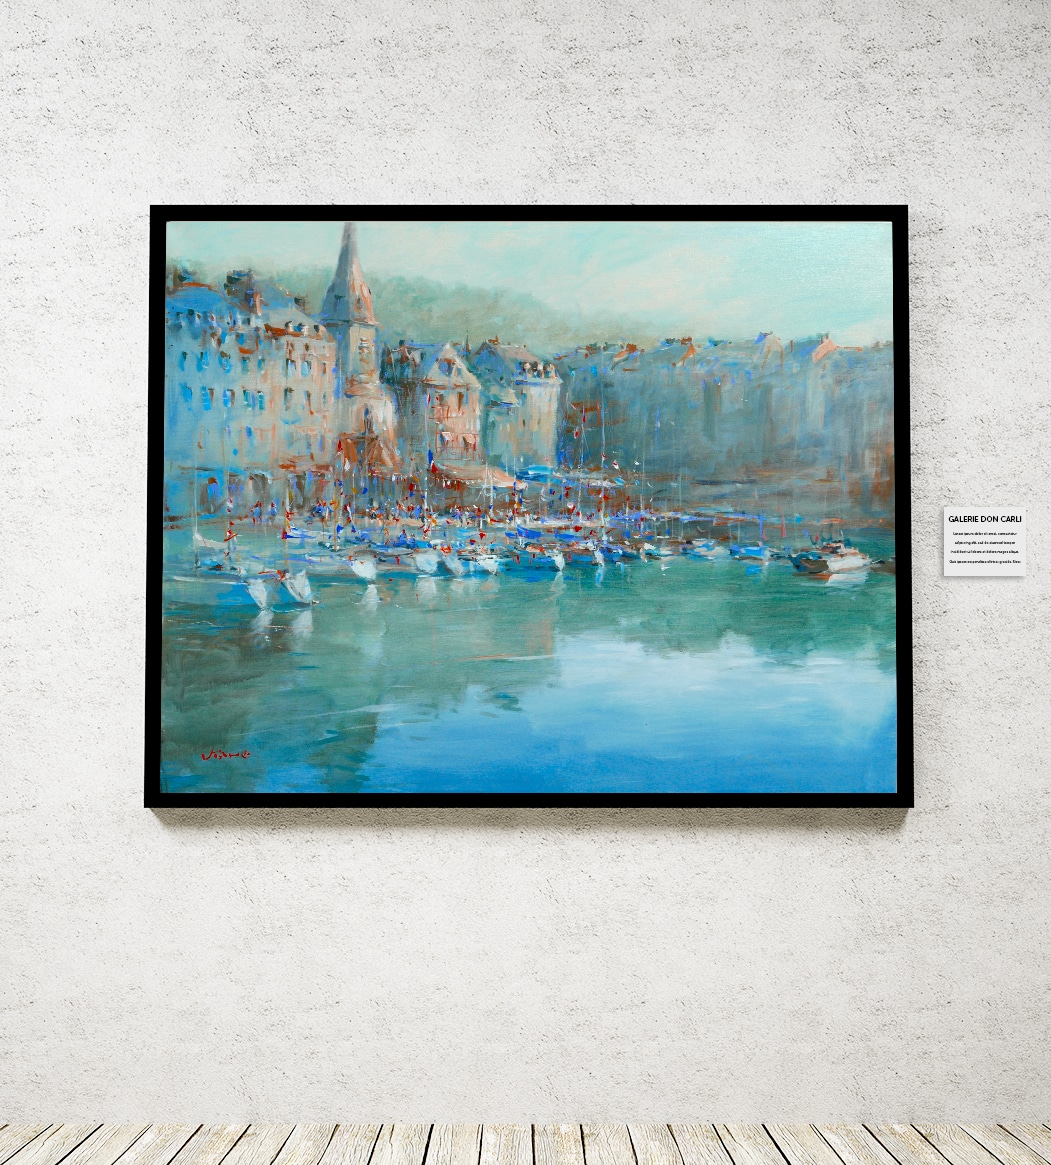 Galerie-Don Carli Van Tame Honfleur In The Morning